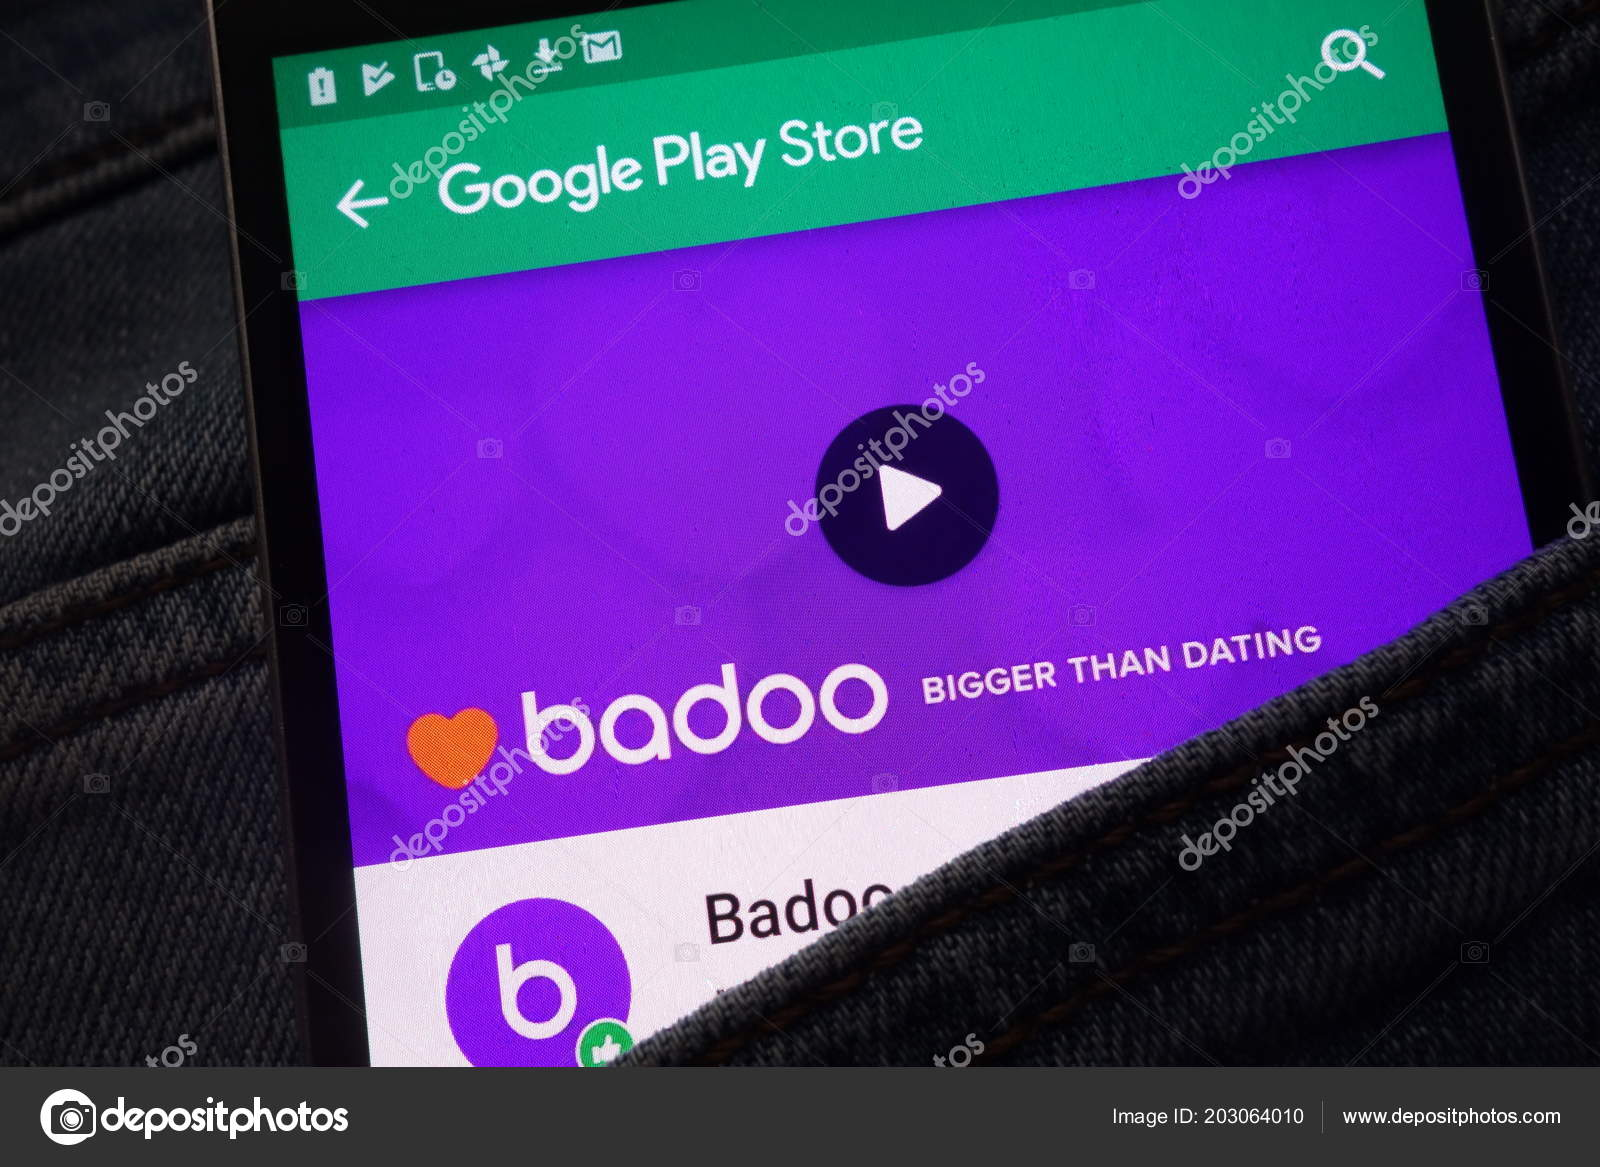 badoo google login